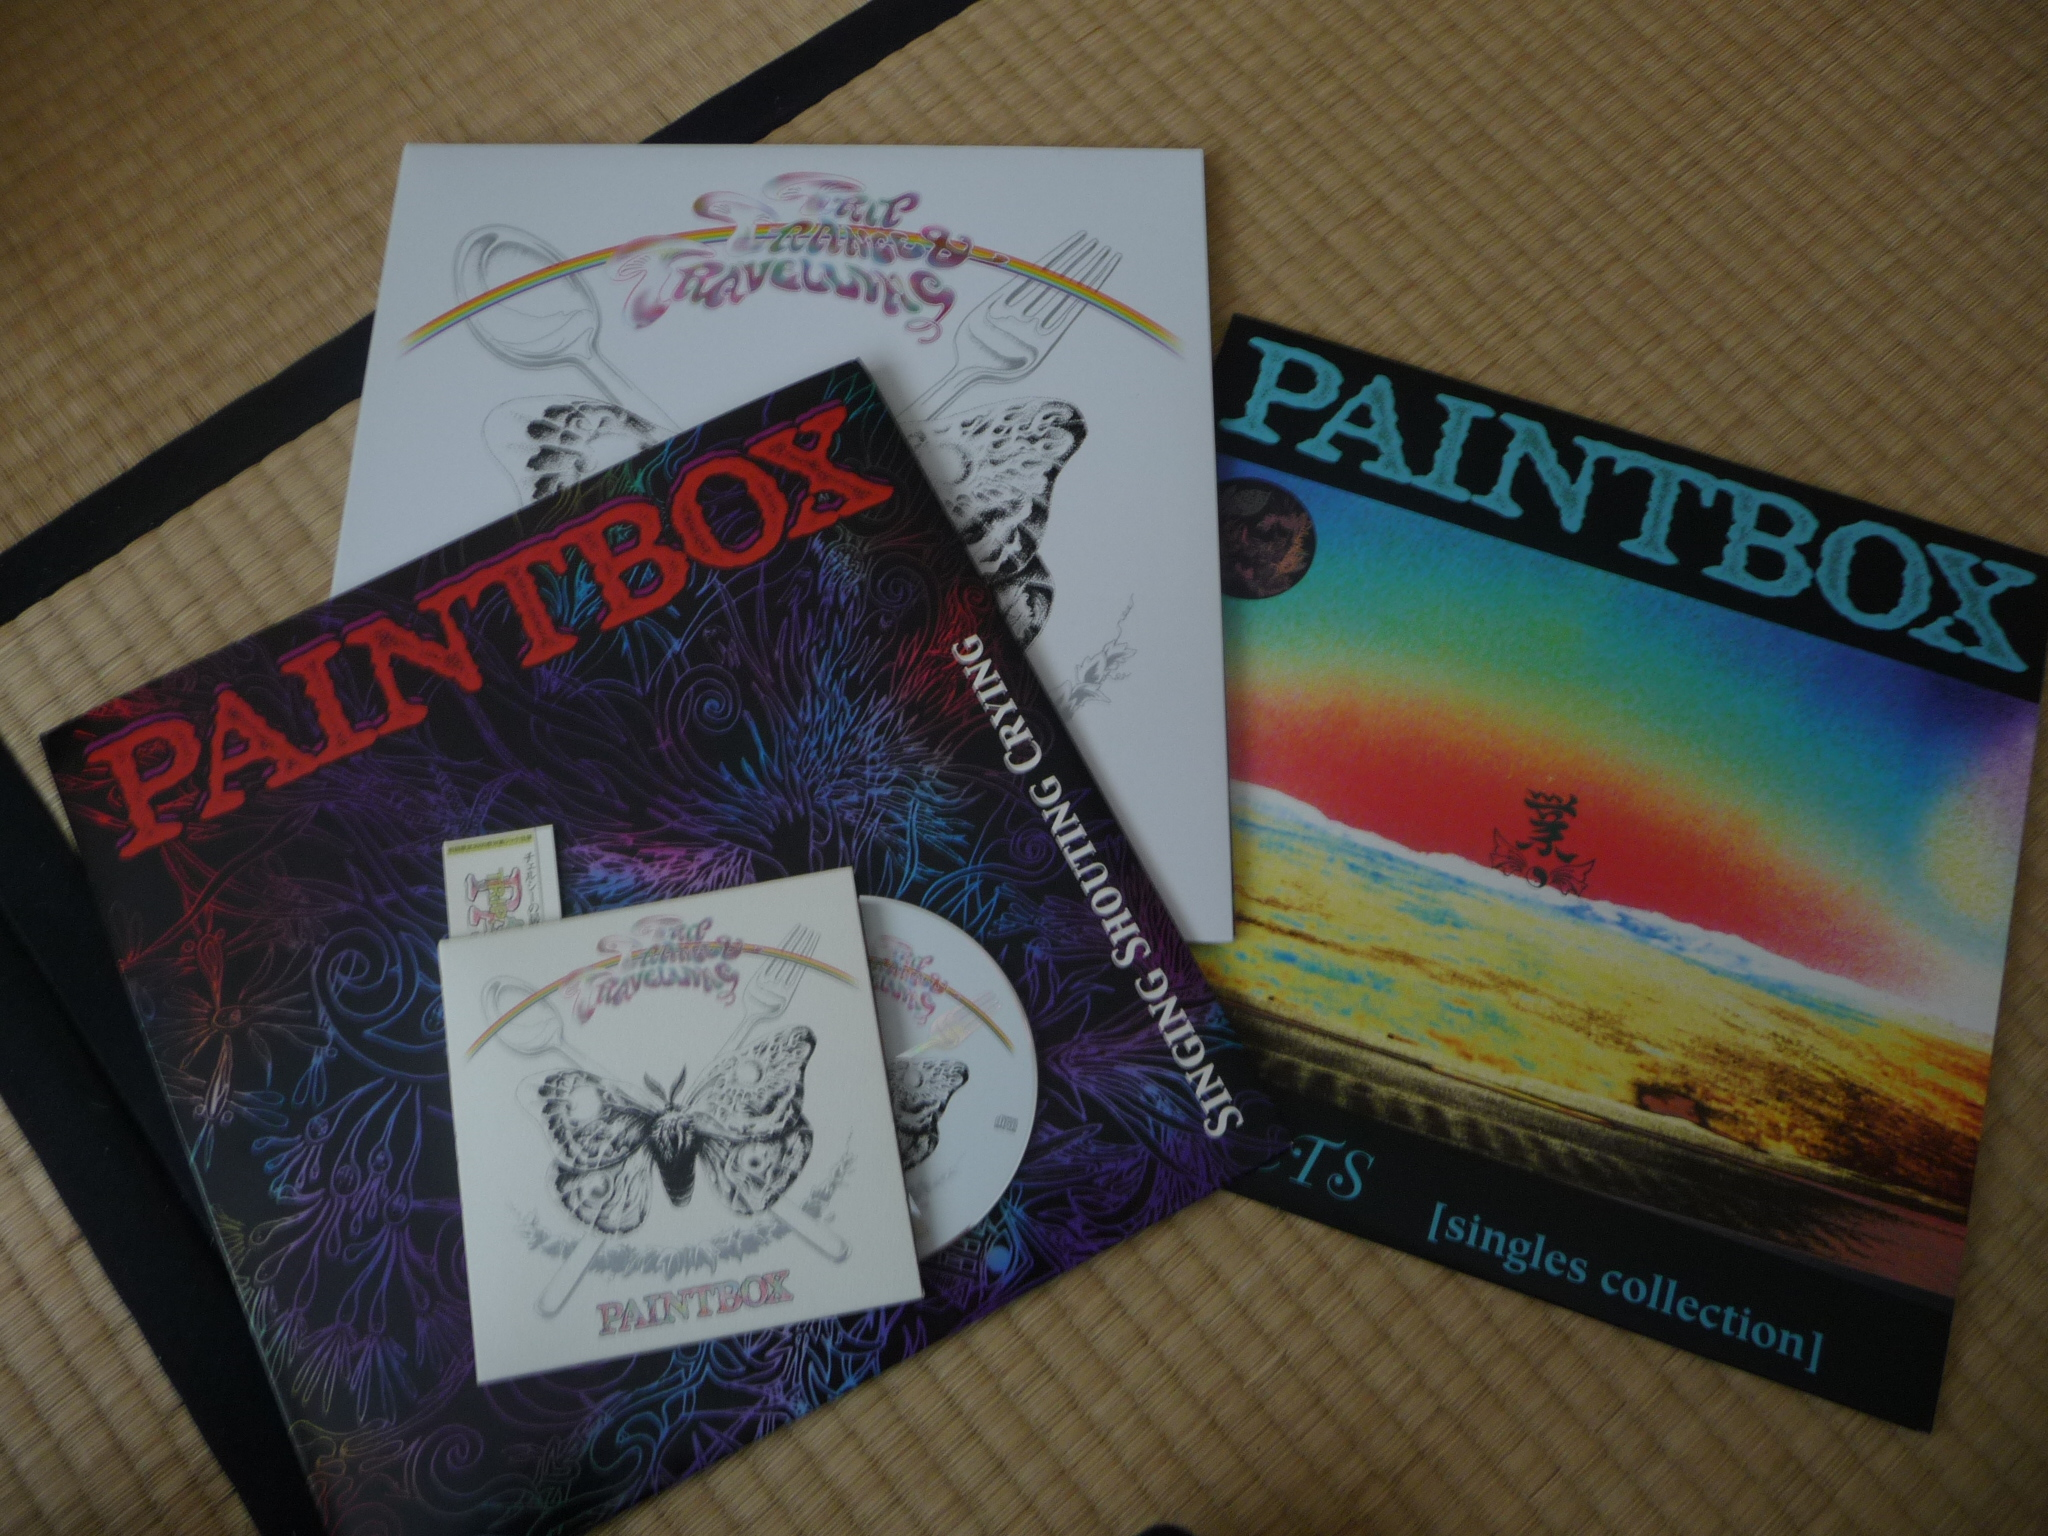 Paintbox Jagged Visions Zine